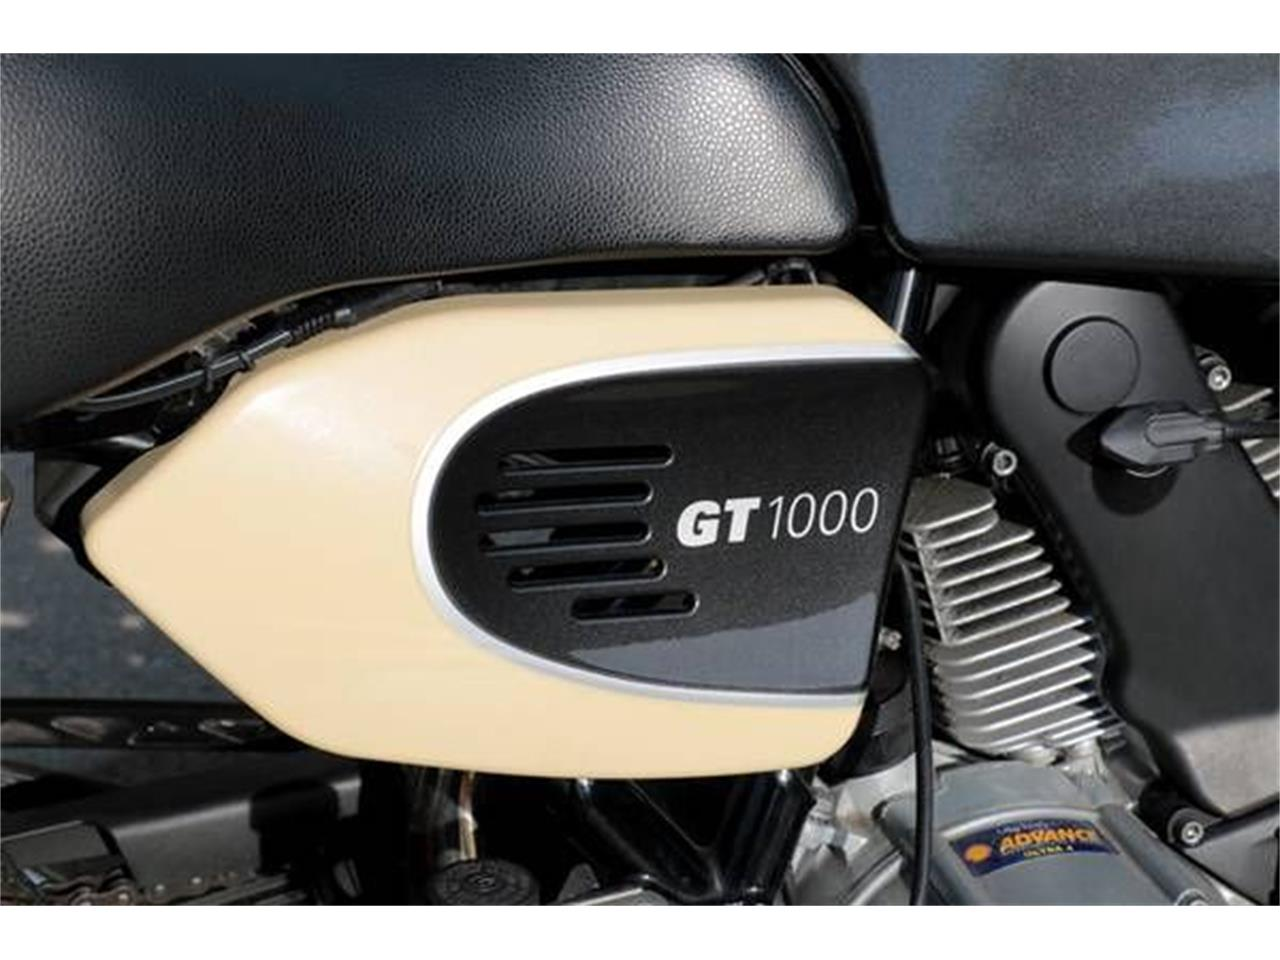 2007 Ducati GT1000 (CC-1264852) for sale in Cadillac, Michigan